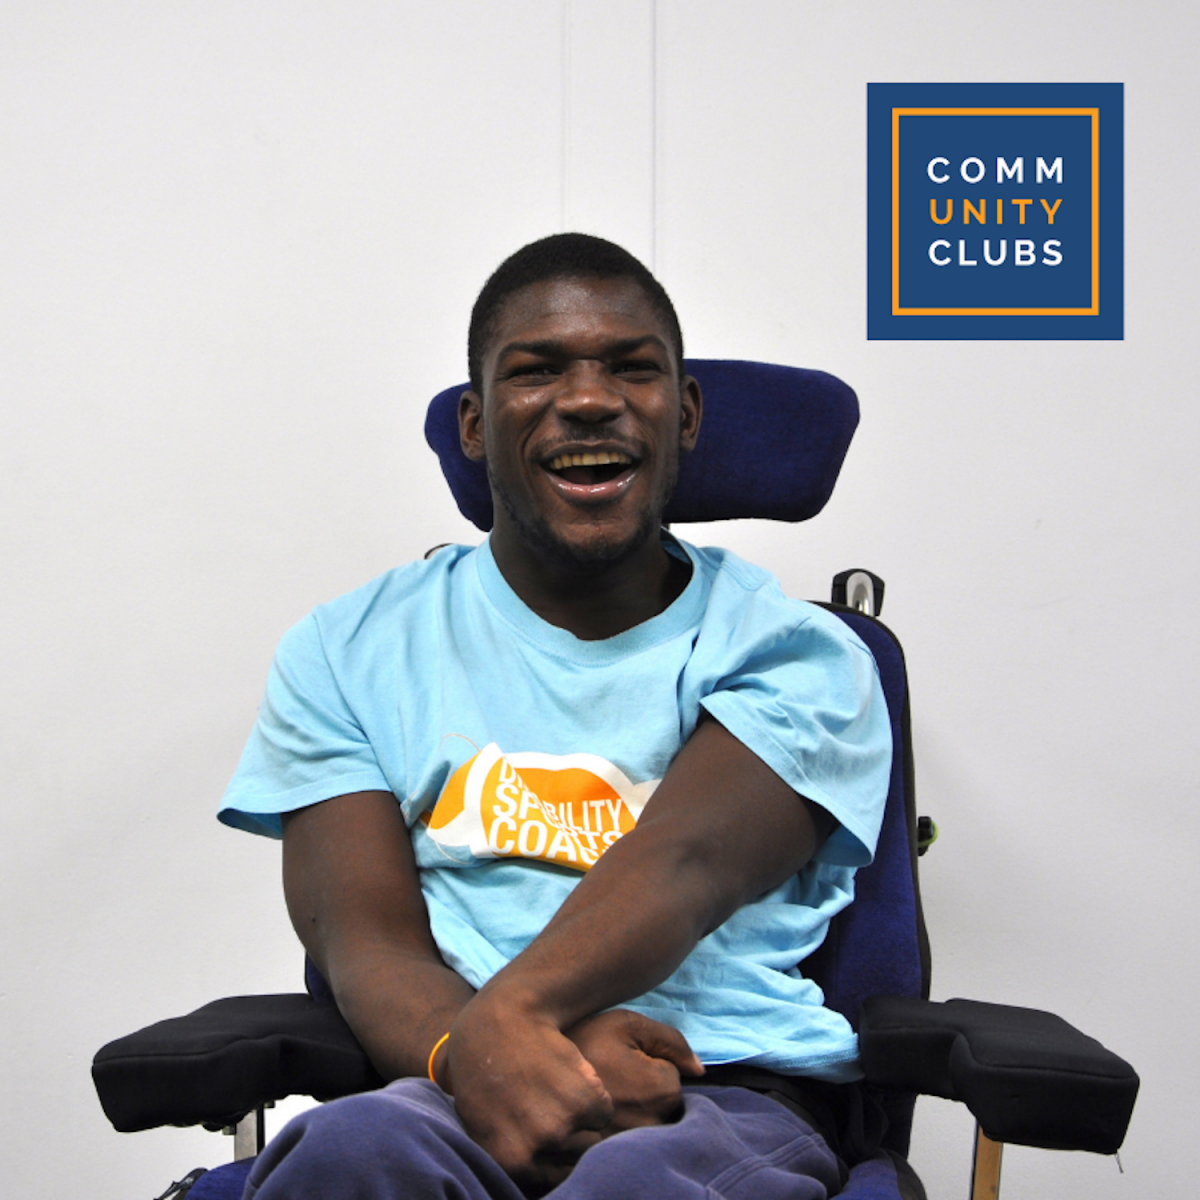 Unity - Community Clubs tackling isolation & loneliness - Cortez's story